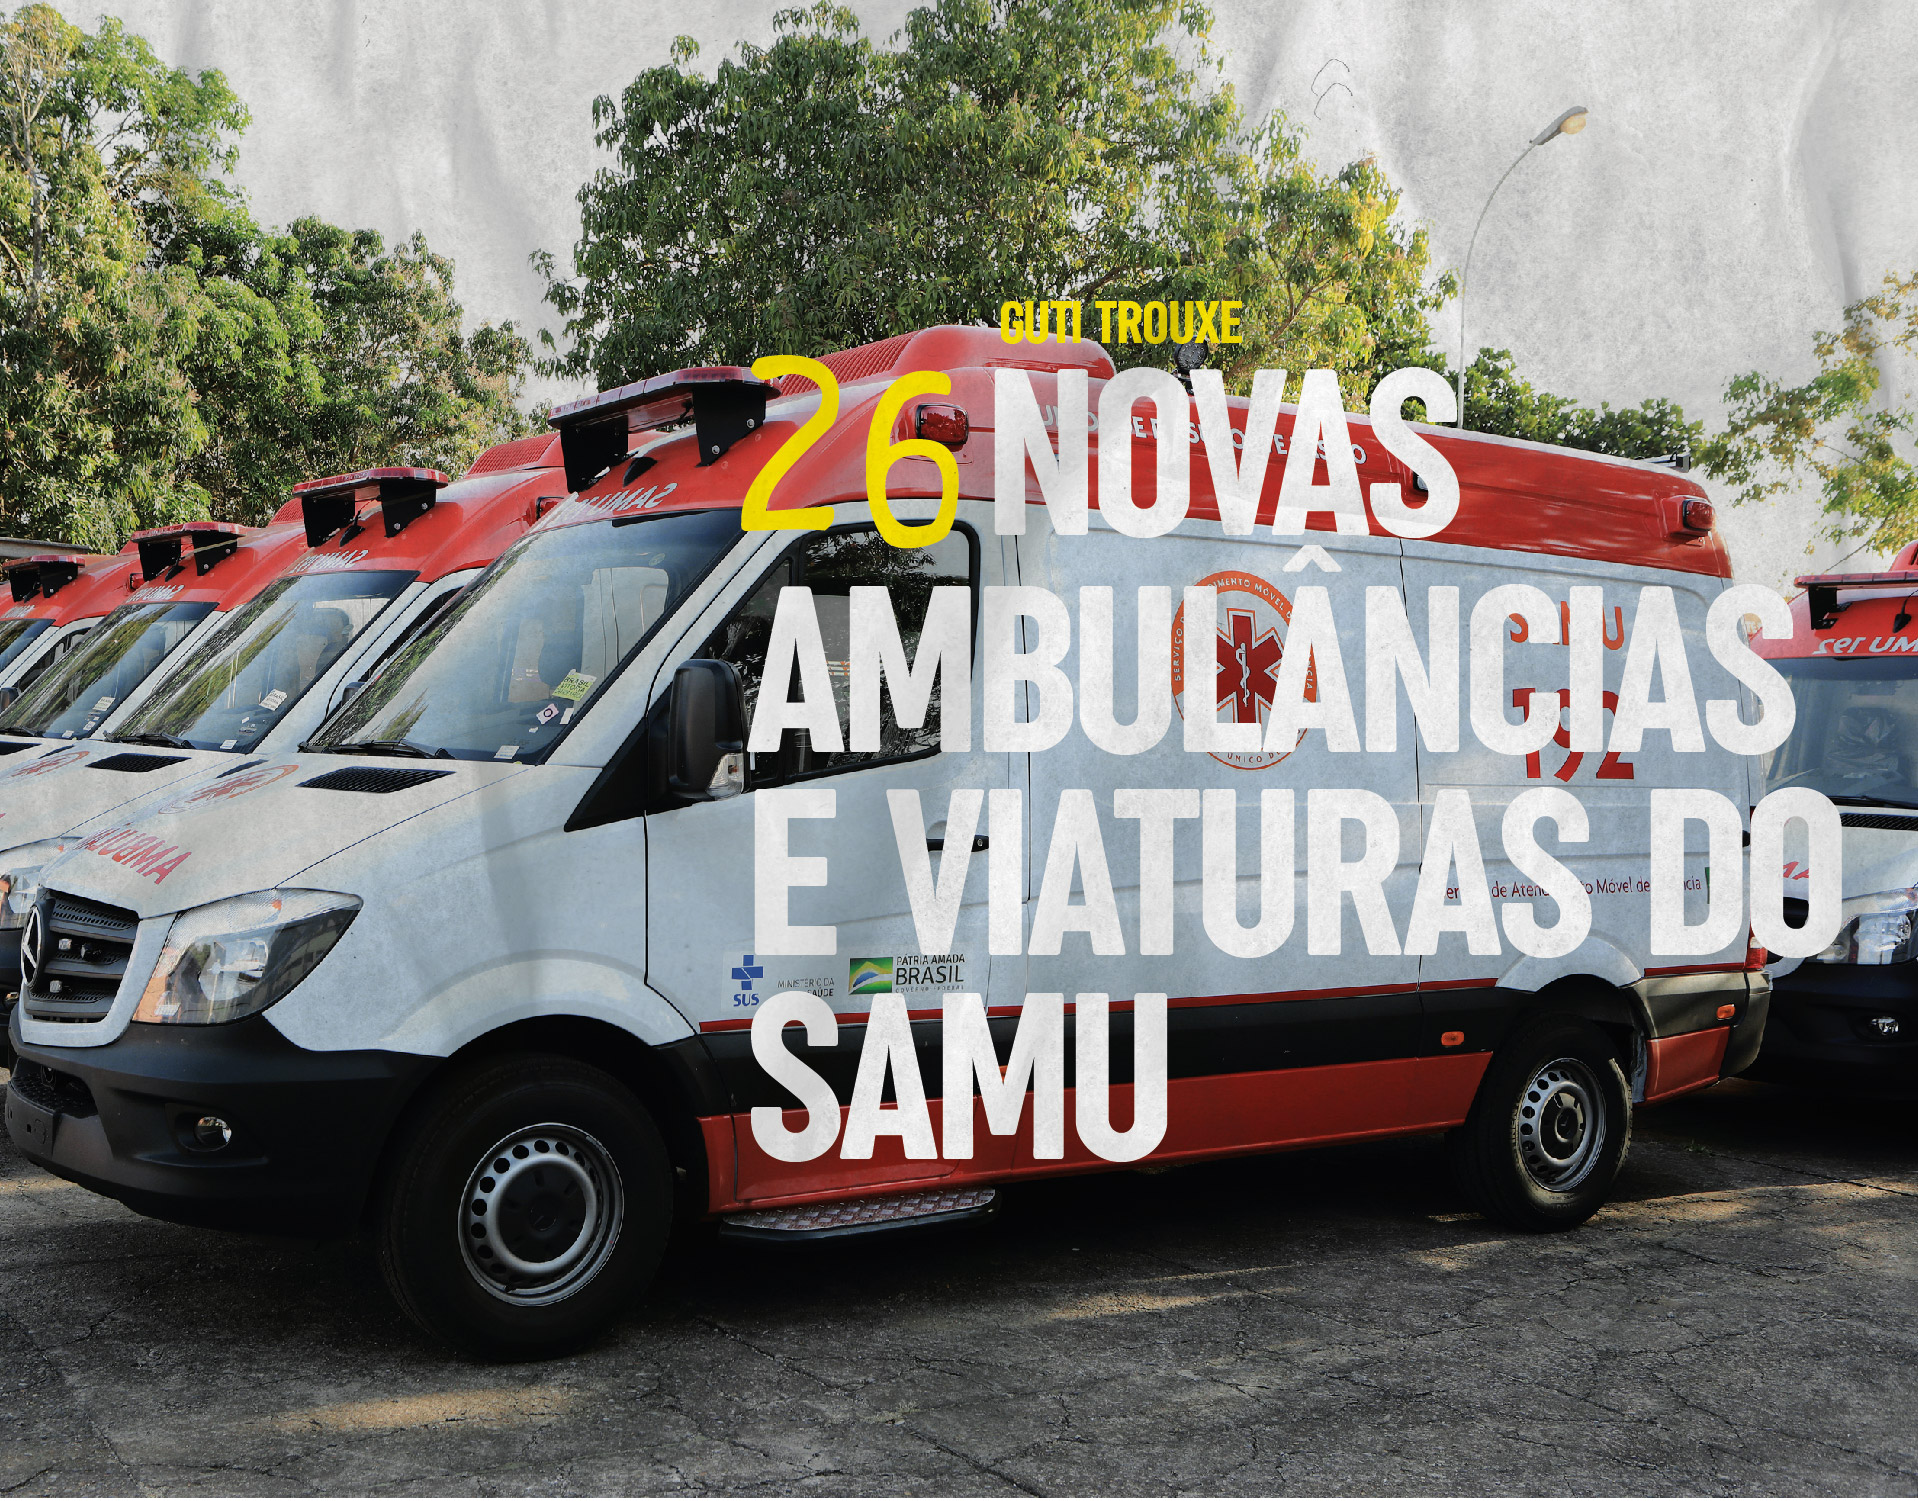 26 novas ambulâncias e viaturas do SAMU